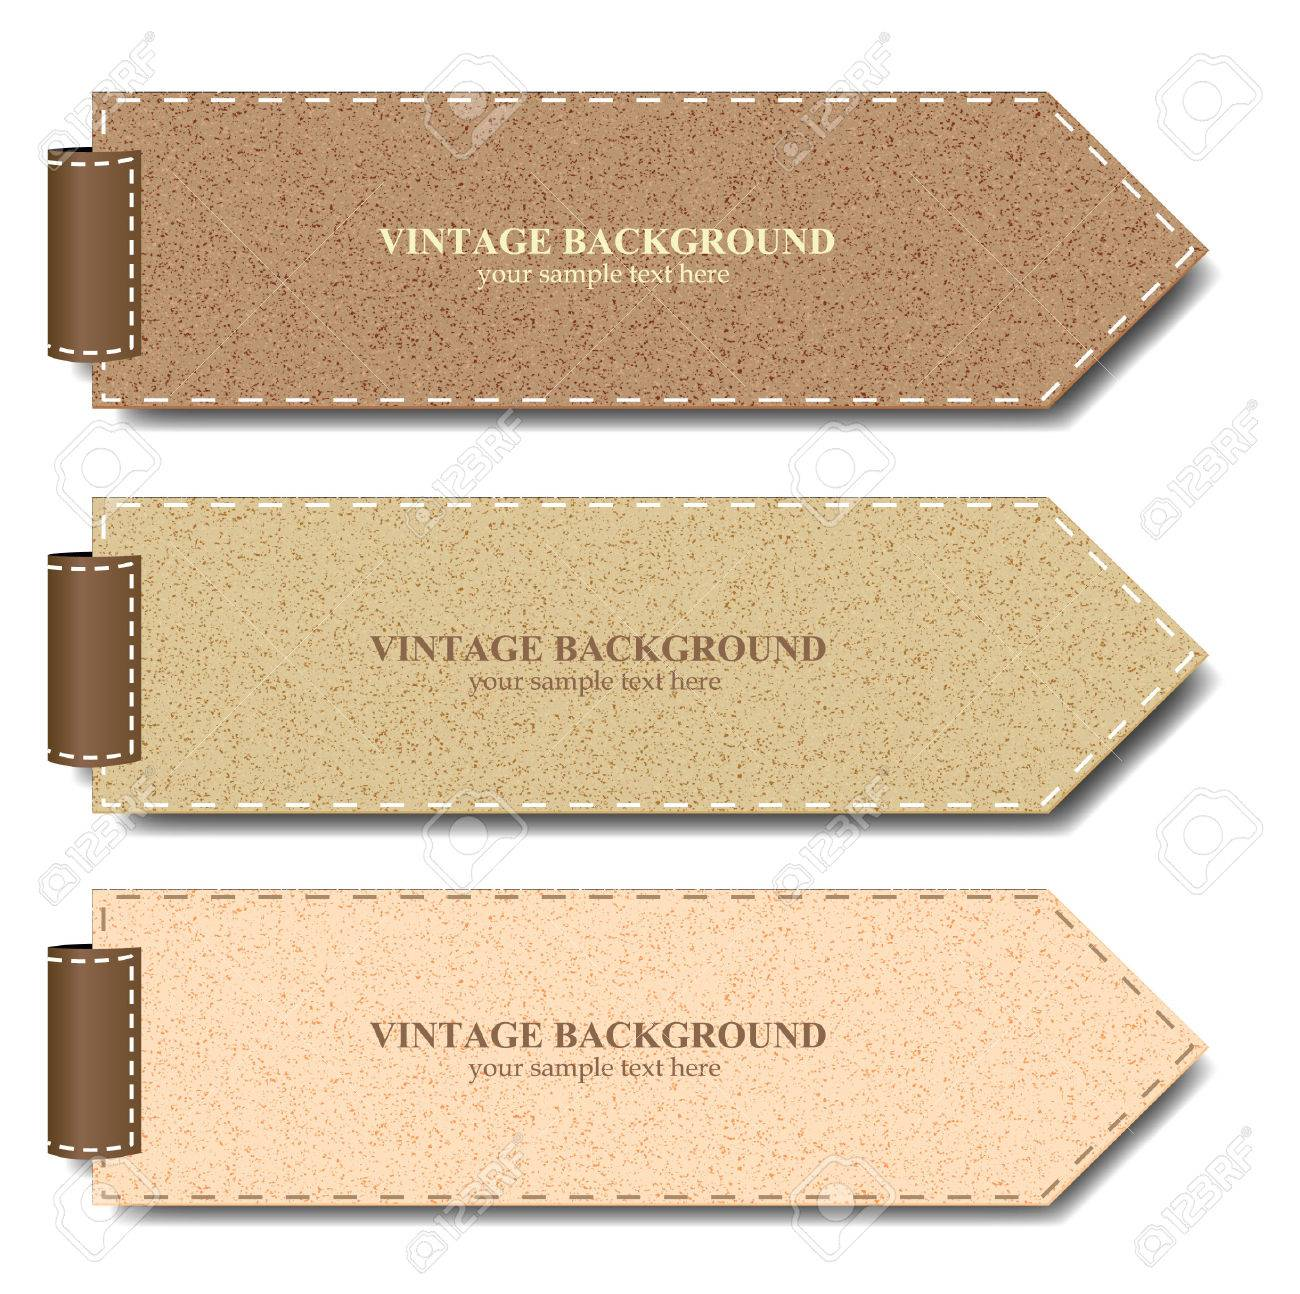 Vintage Paper Set For Banner Or Product Promotion - Vector ...